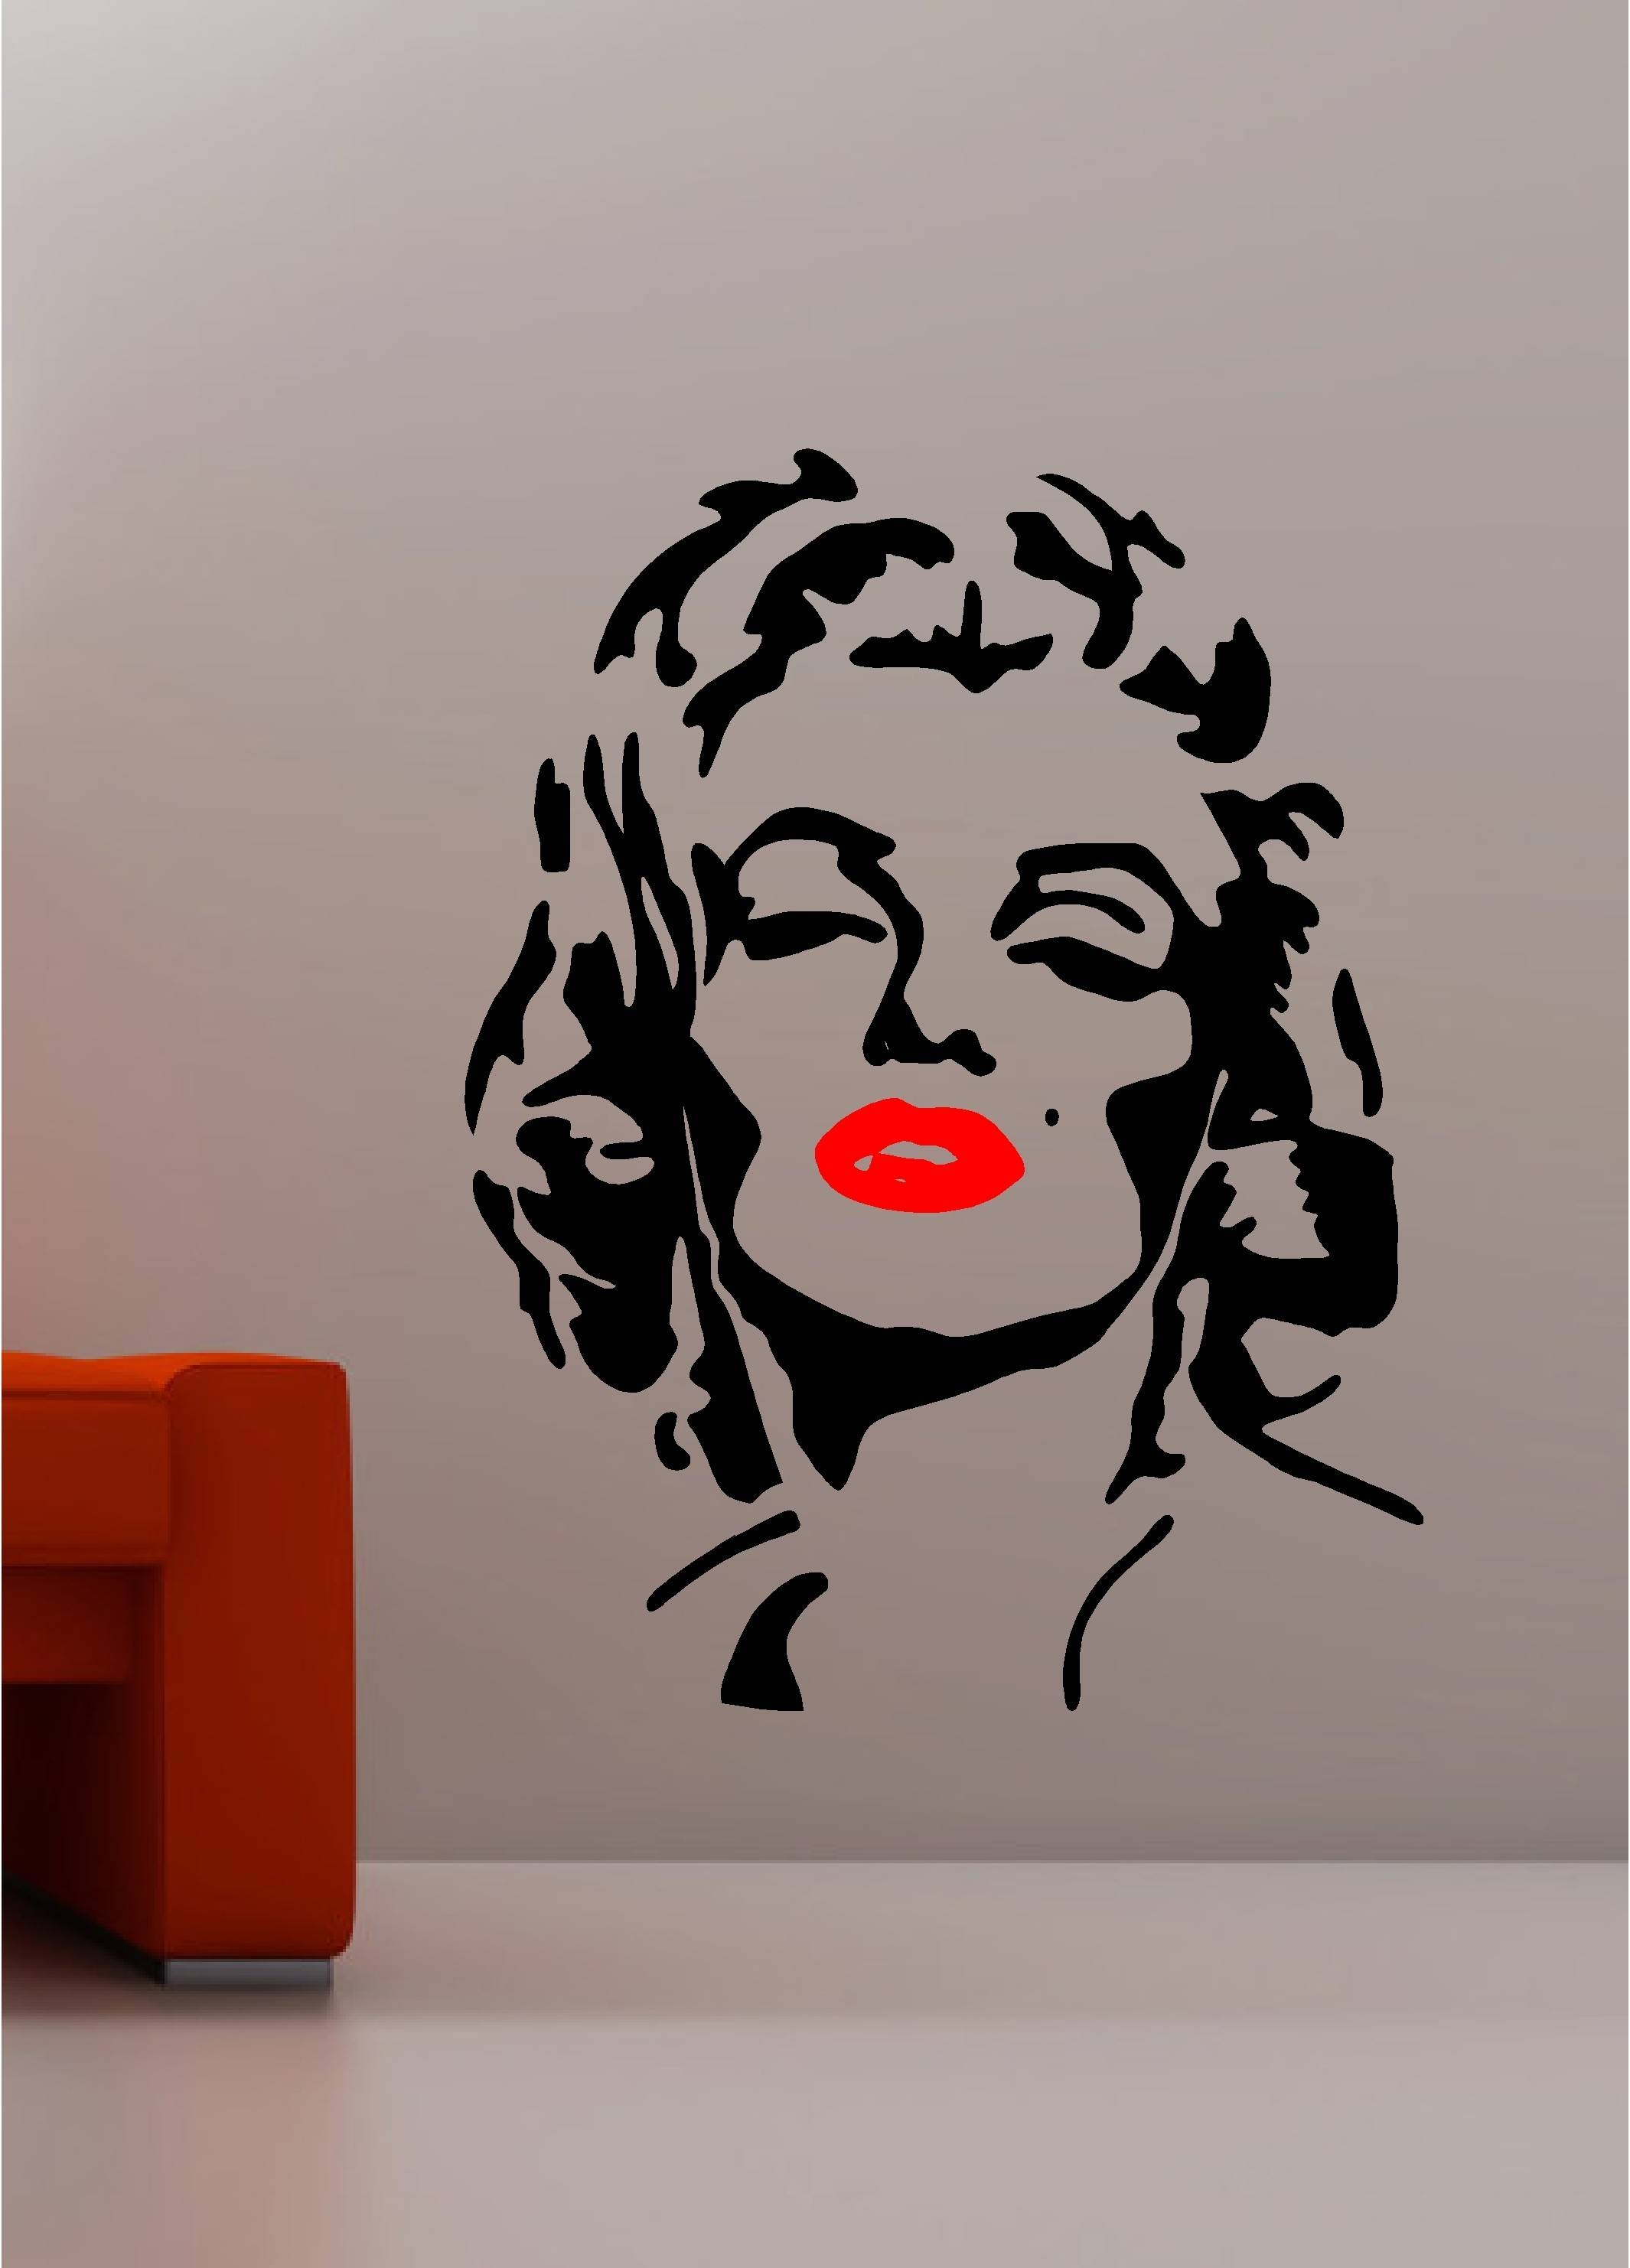 New Marilyn Monroe Wall Art | About My Blog For Latest Marilyn Monroe Wall Art (Gallery 2 of 25)